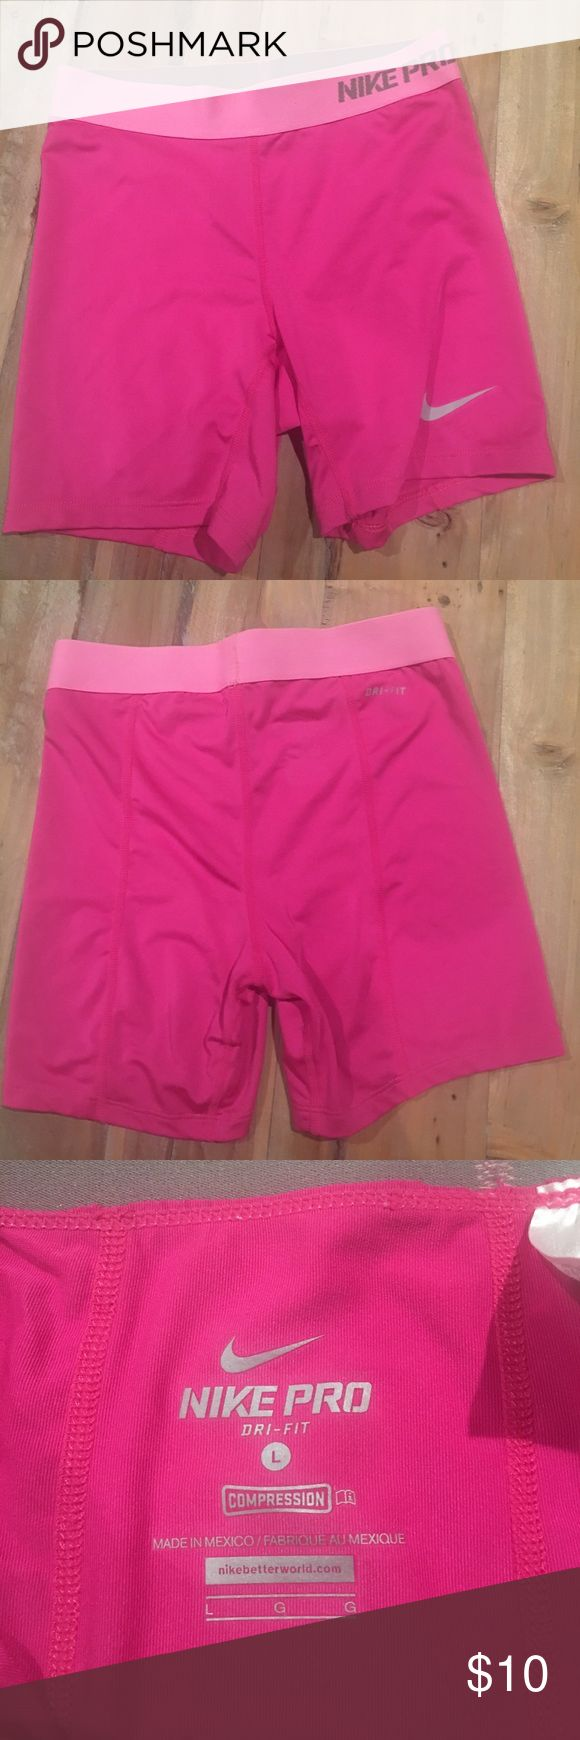 Nike Pro Dri-Fit Compression Shorts Girls stretch Nike compression shorts. Excellent used condition. No stains or snags. Color is hot pink with lighter pink waistband. Nike Bottoms Shorts